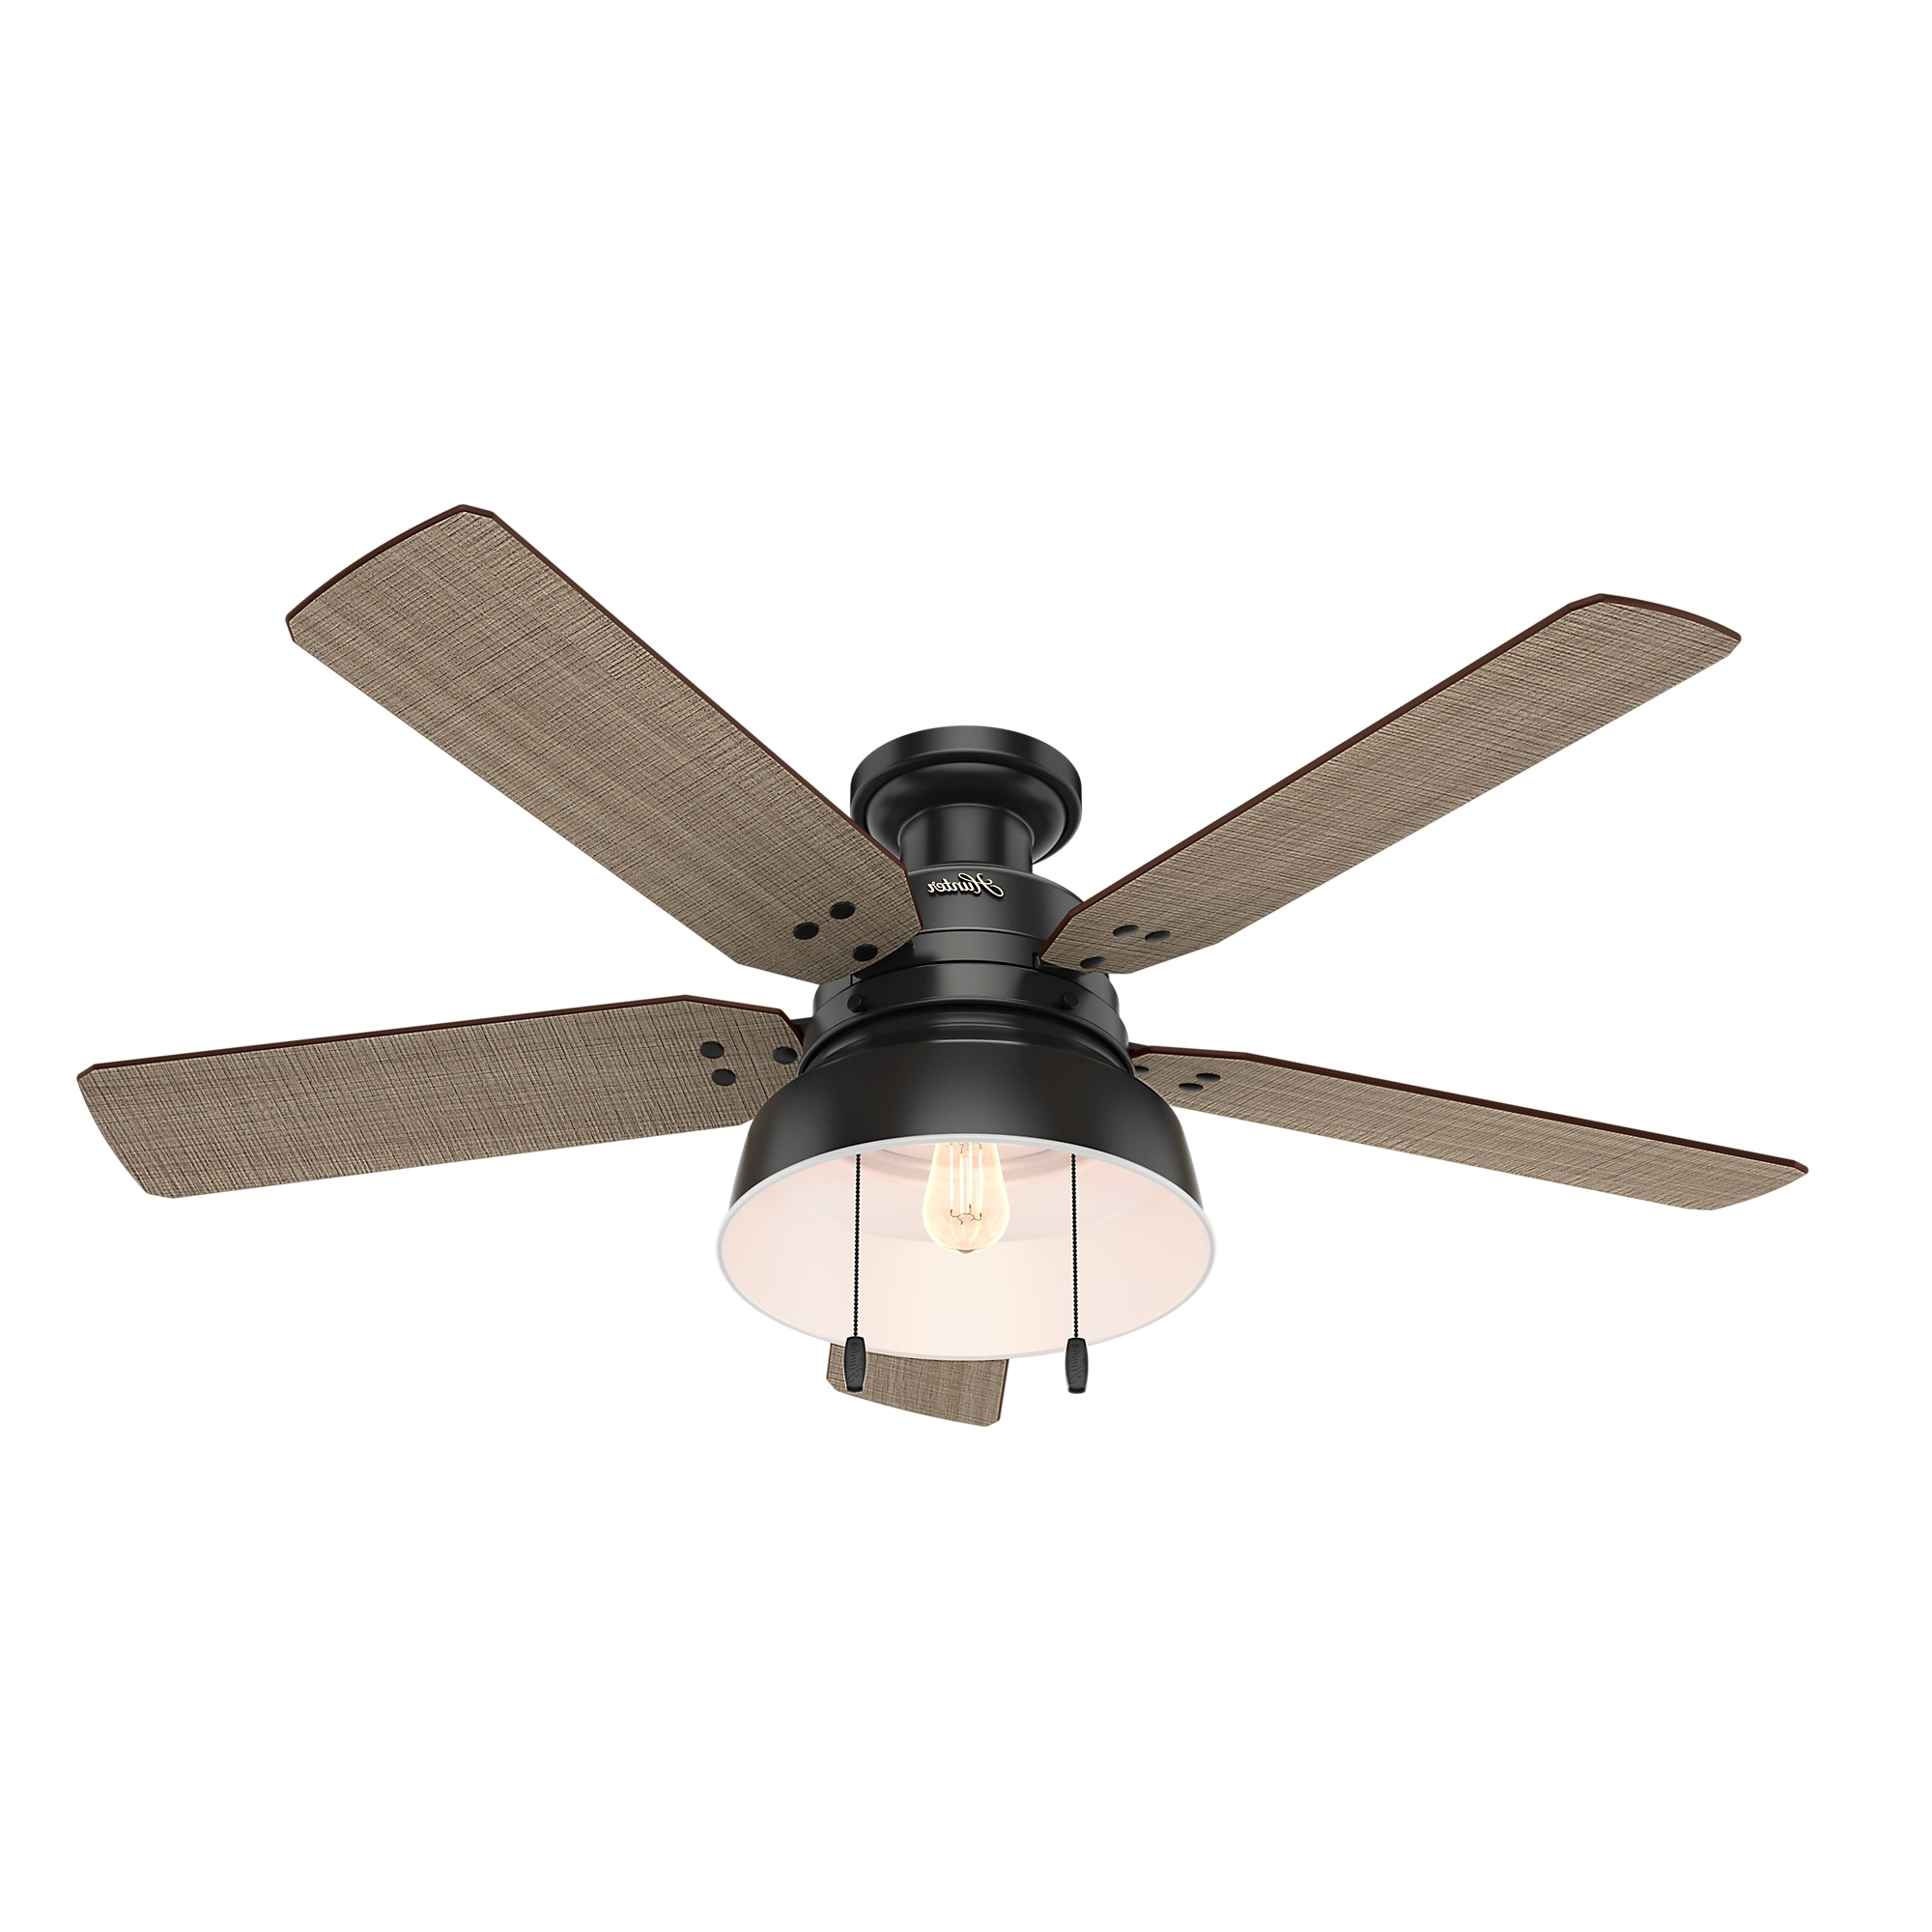 Low Profile Outdoor Ceiling Fans With Lights Throughout Widely Used Mill Valley Low Profile Outdoor Ceiling Fan With Lighthunter Fan (View 12 of 20)